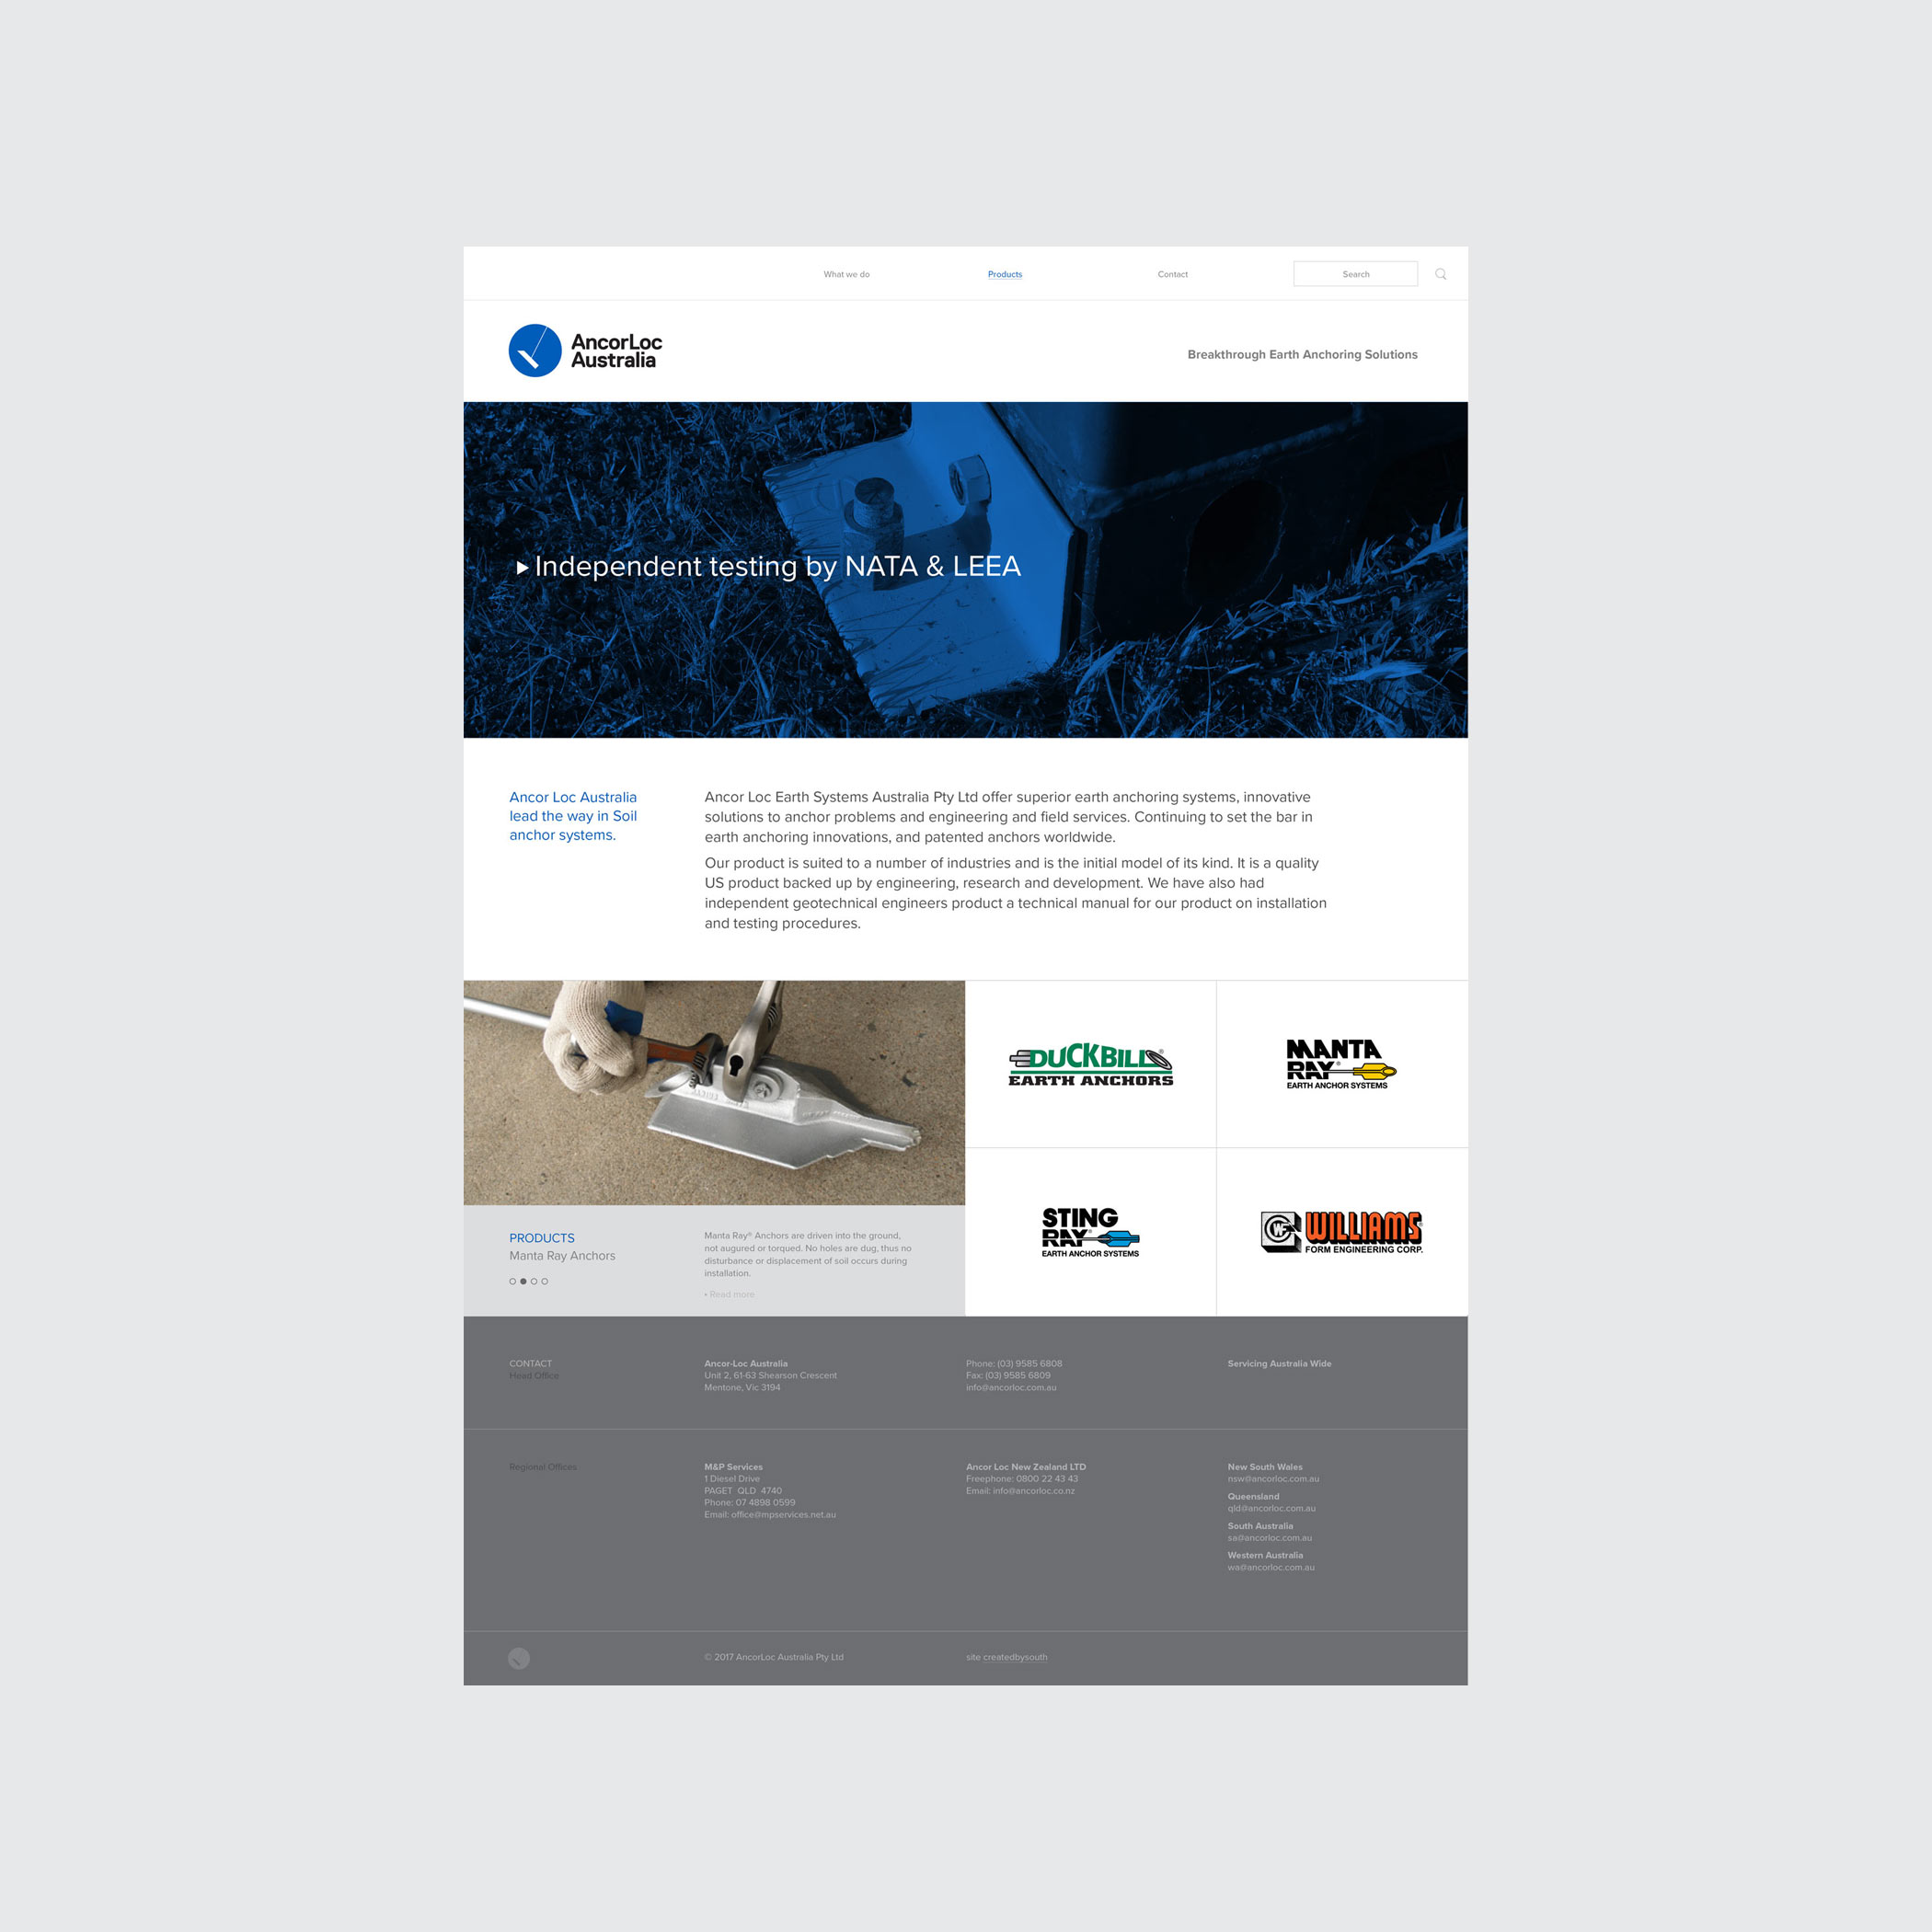 AcorLoc website design and build